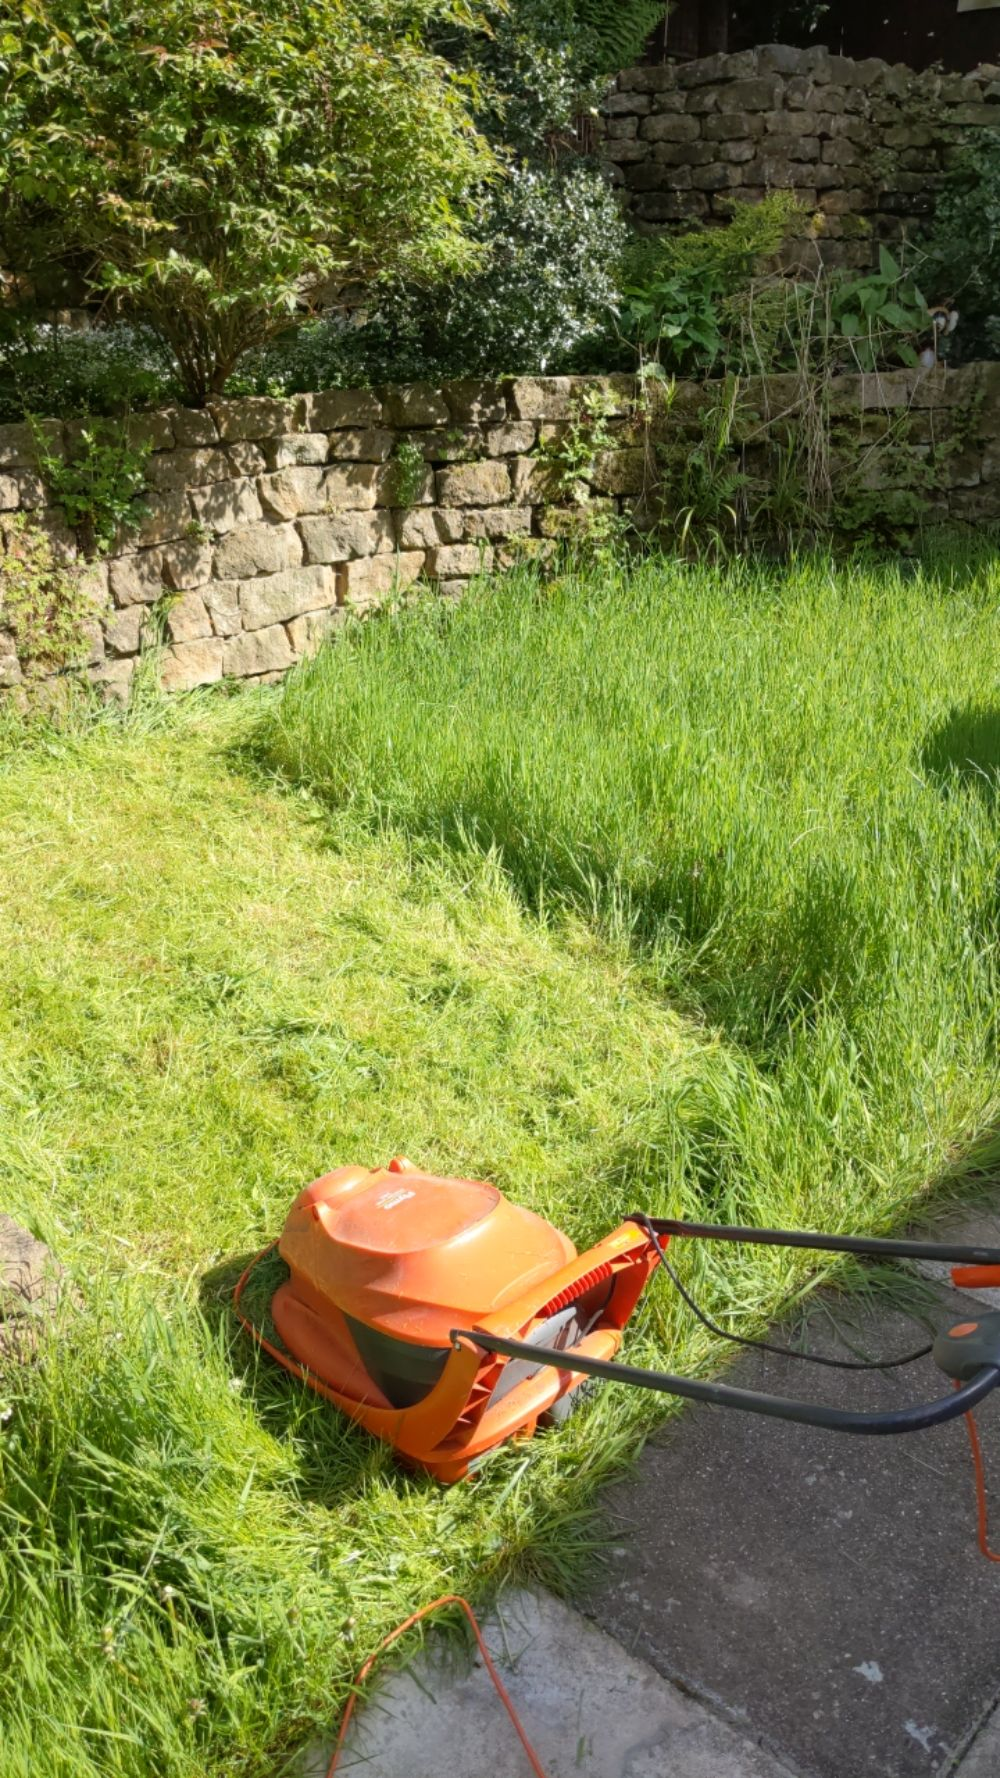 A lawnmower sitting on a portion of the freshly mown lawn, showing a very stark contrast between the freshly mown grass, and the very tall grass that has not yet been mown